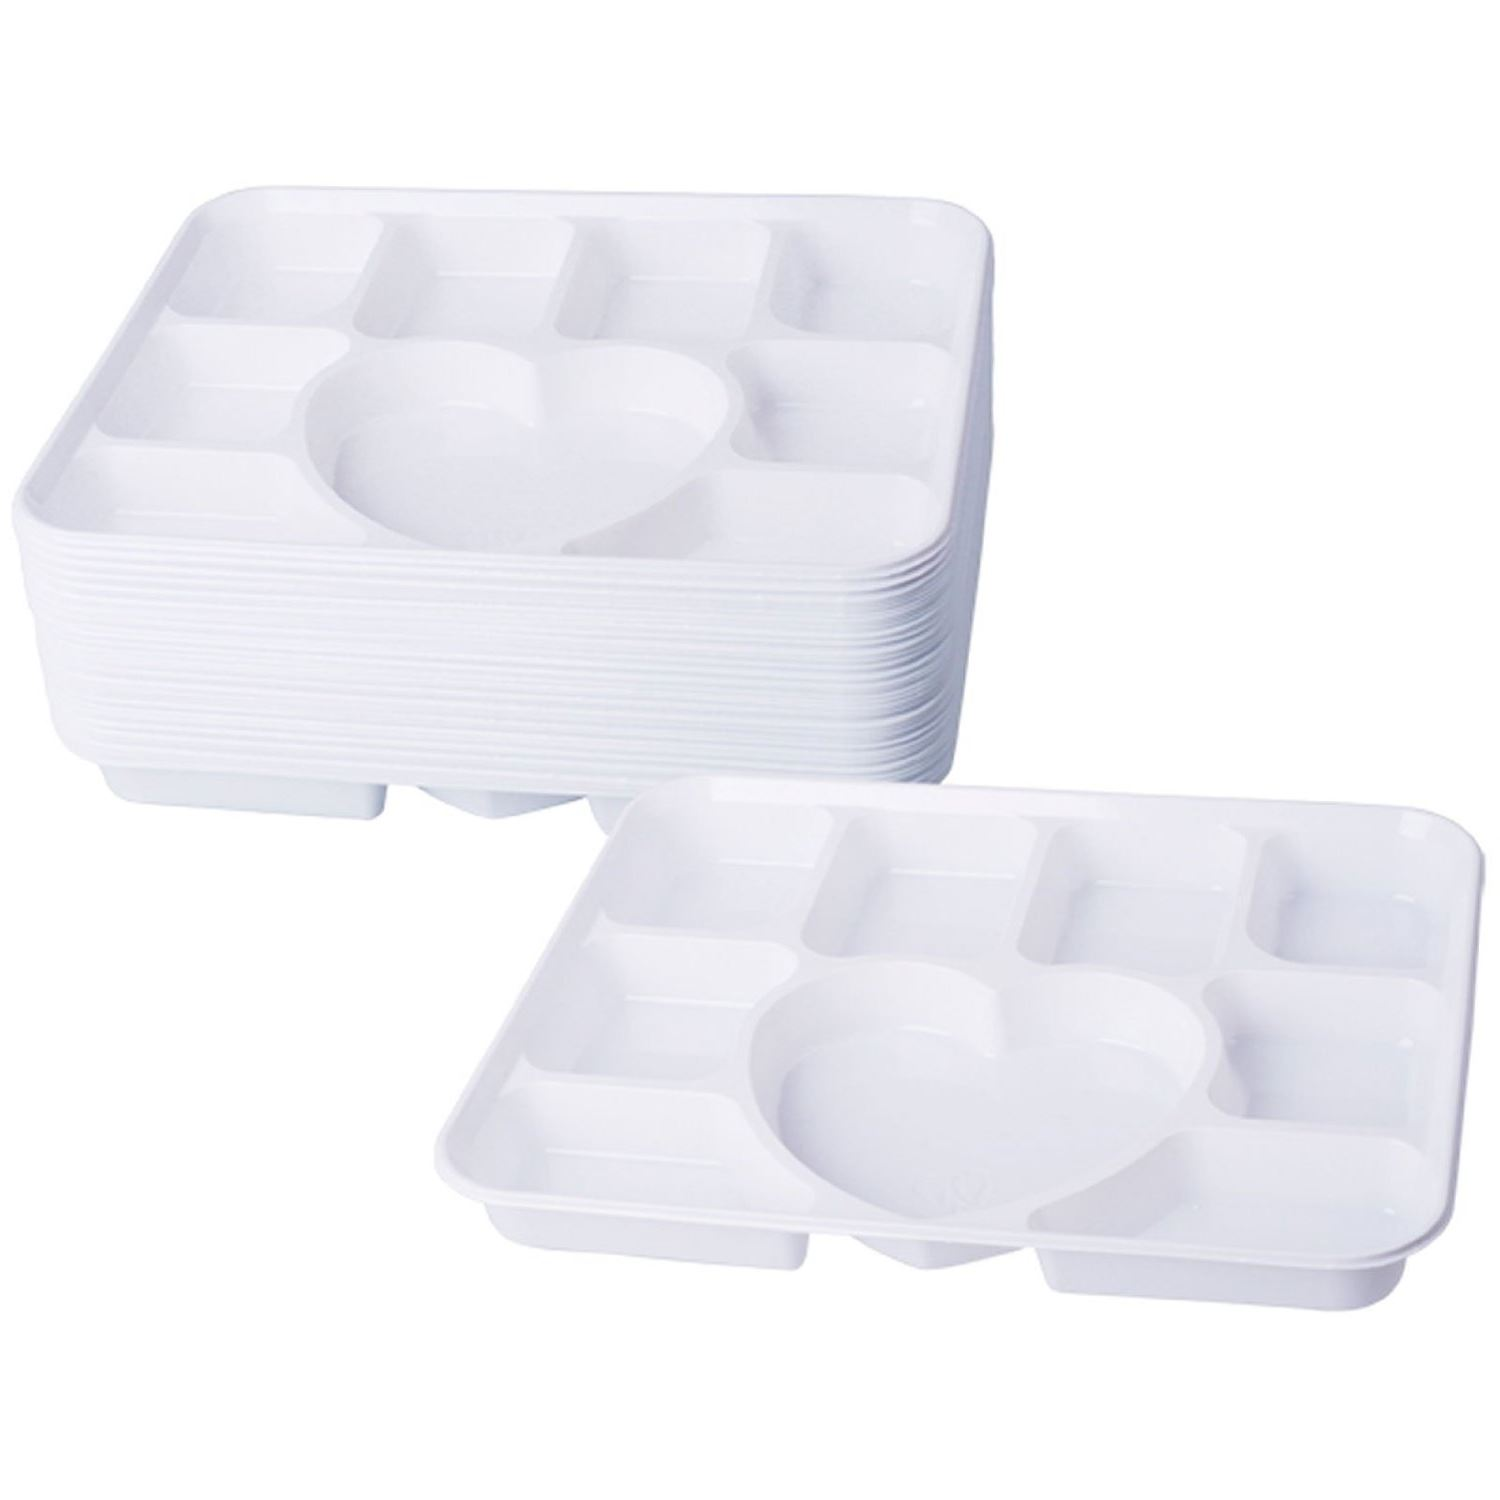 Compartment-Plastic-Dinner-Plates-50-pcs-Party-Home-  sc 1 st  eBay & Compartment Plastic Dinner Plates 50 pcs Party Home Food Disposable ...